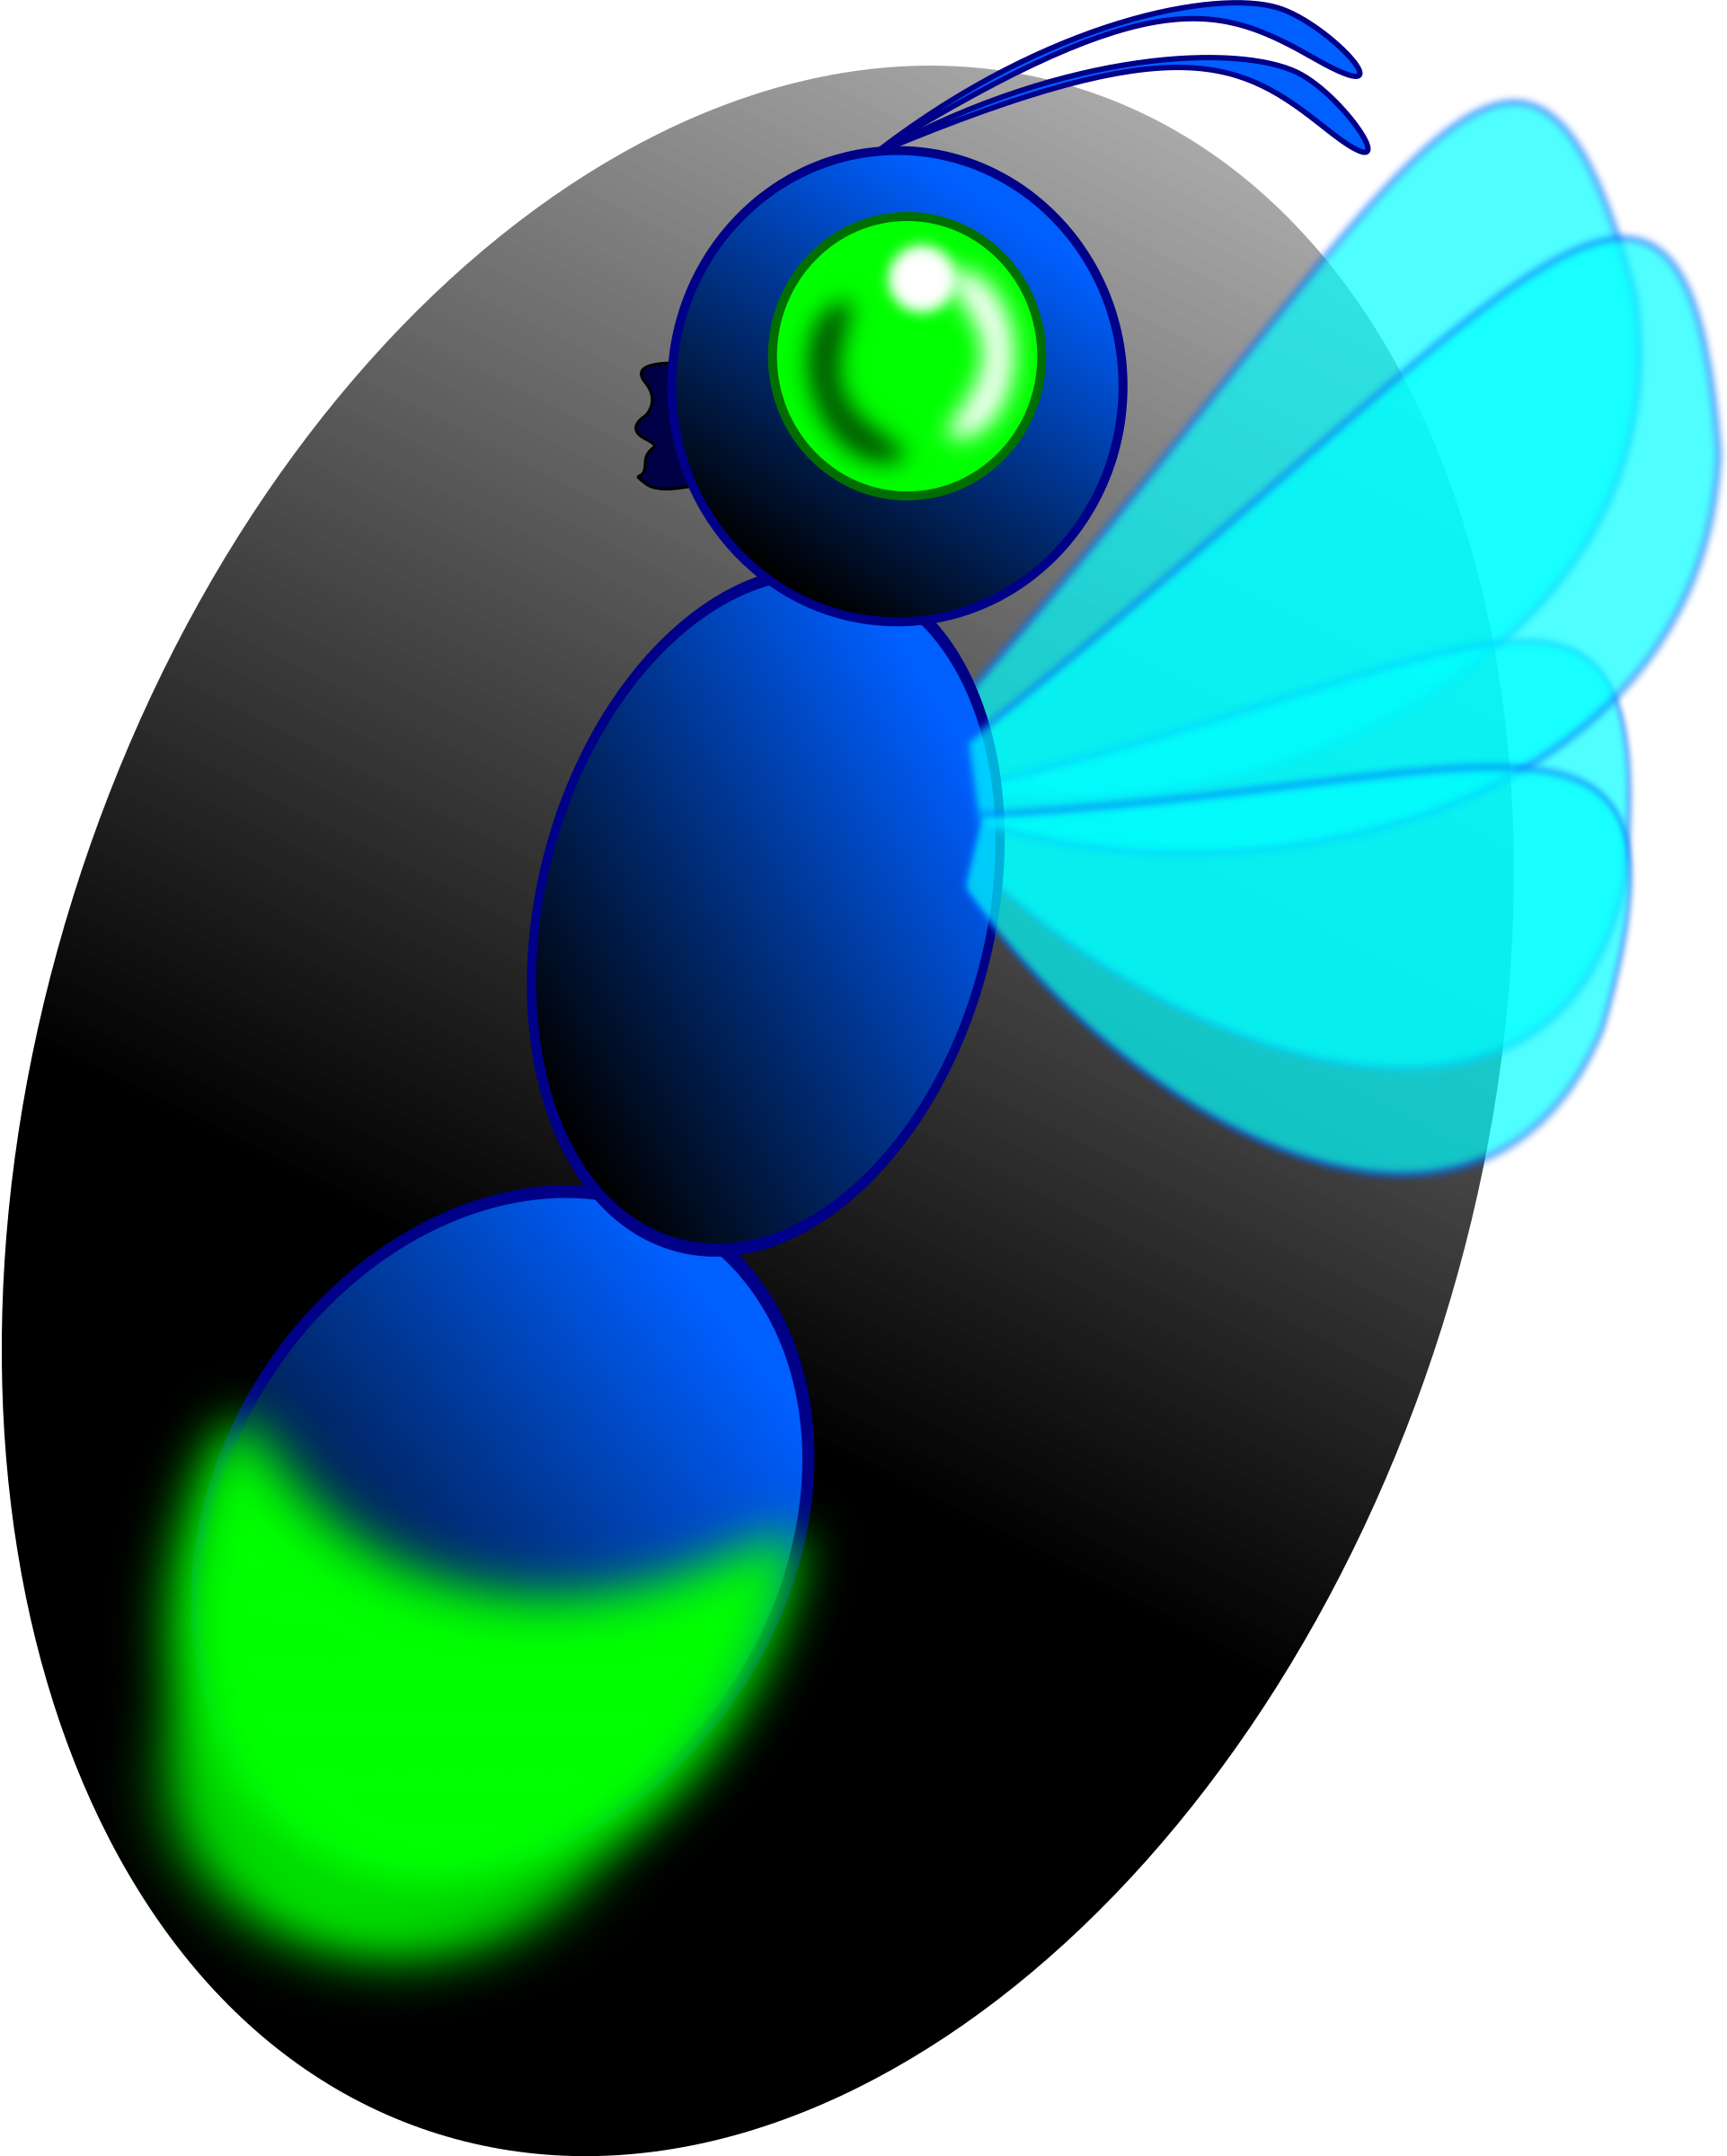 Firefly clipart svg. Big image png